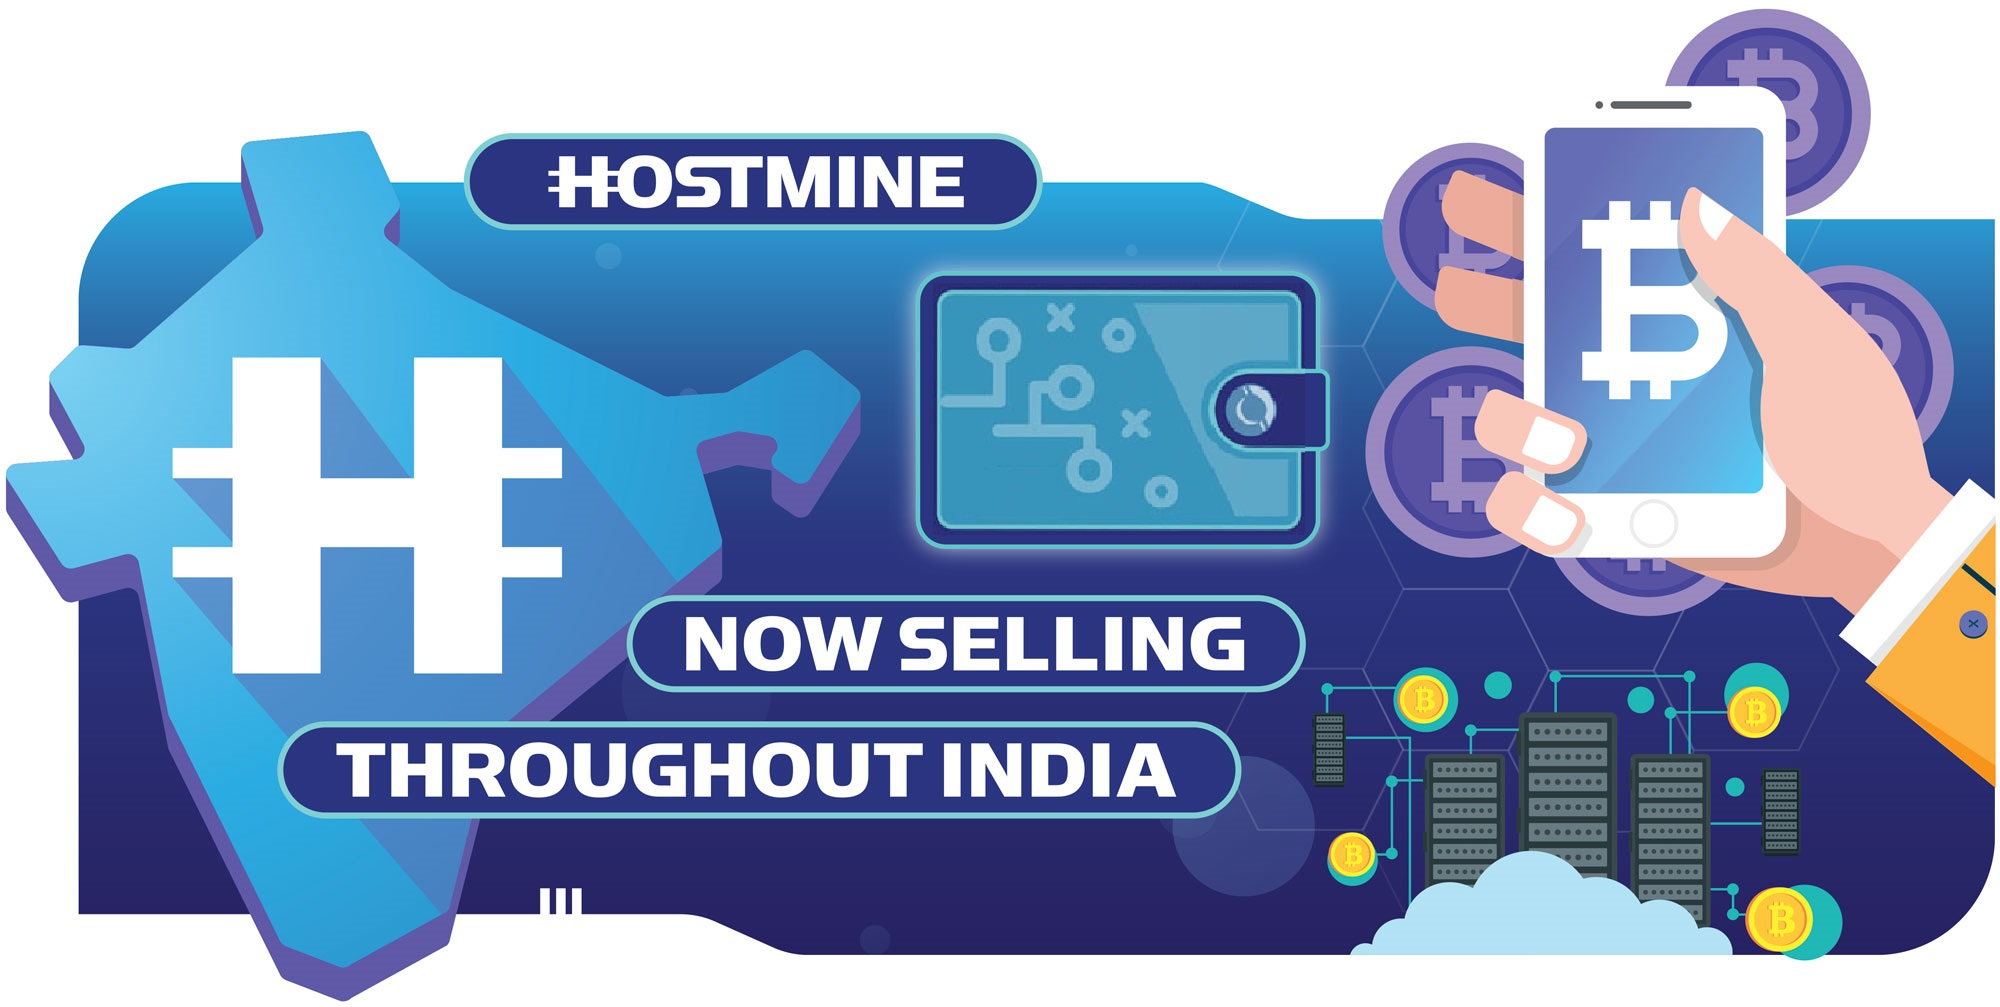 Hostmine Launches India Shipping Service 1